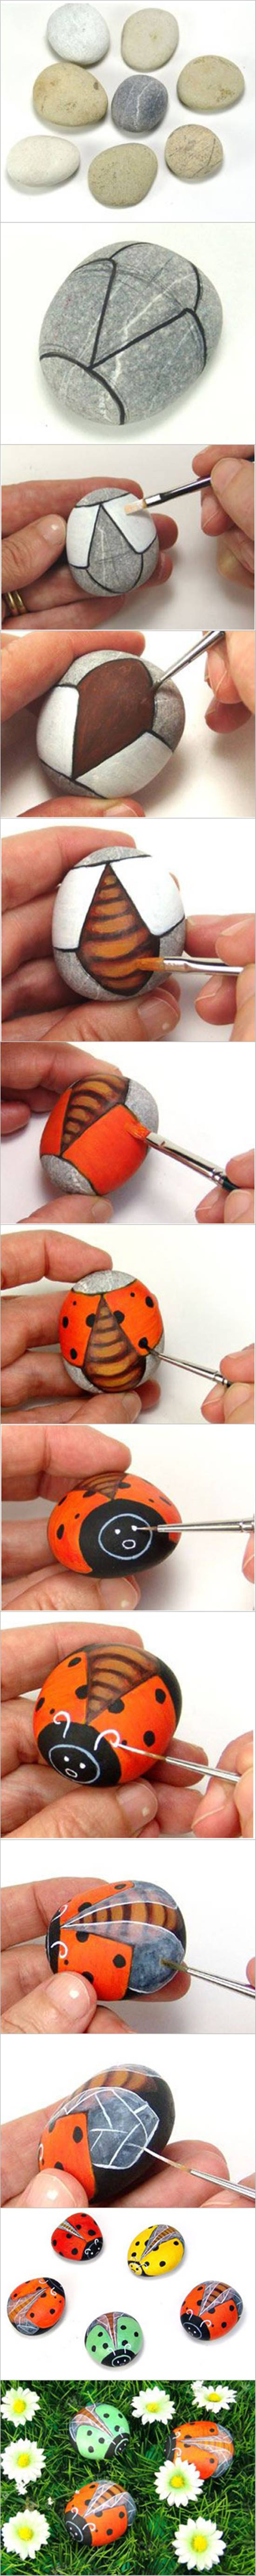 How to DIY Painted Pebble Ladybugs